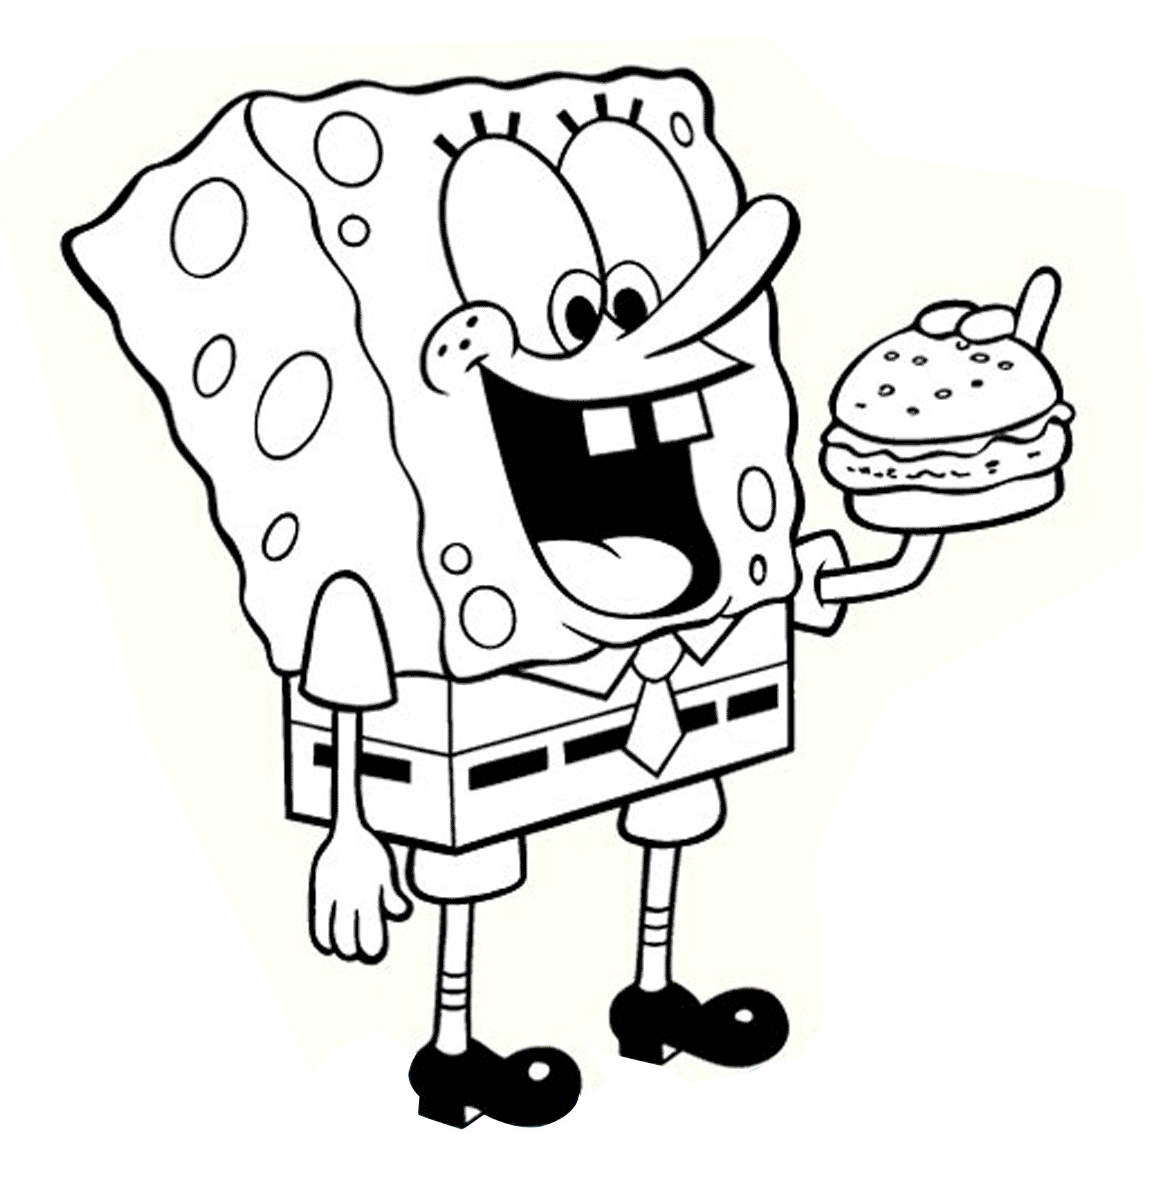 get the latest free baby spongebob printable coloring page images favorite coloring pages to print online by only coloring - Free Coloring Pages To Print